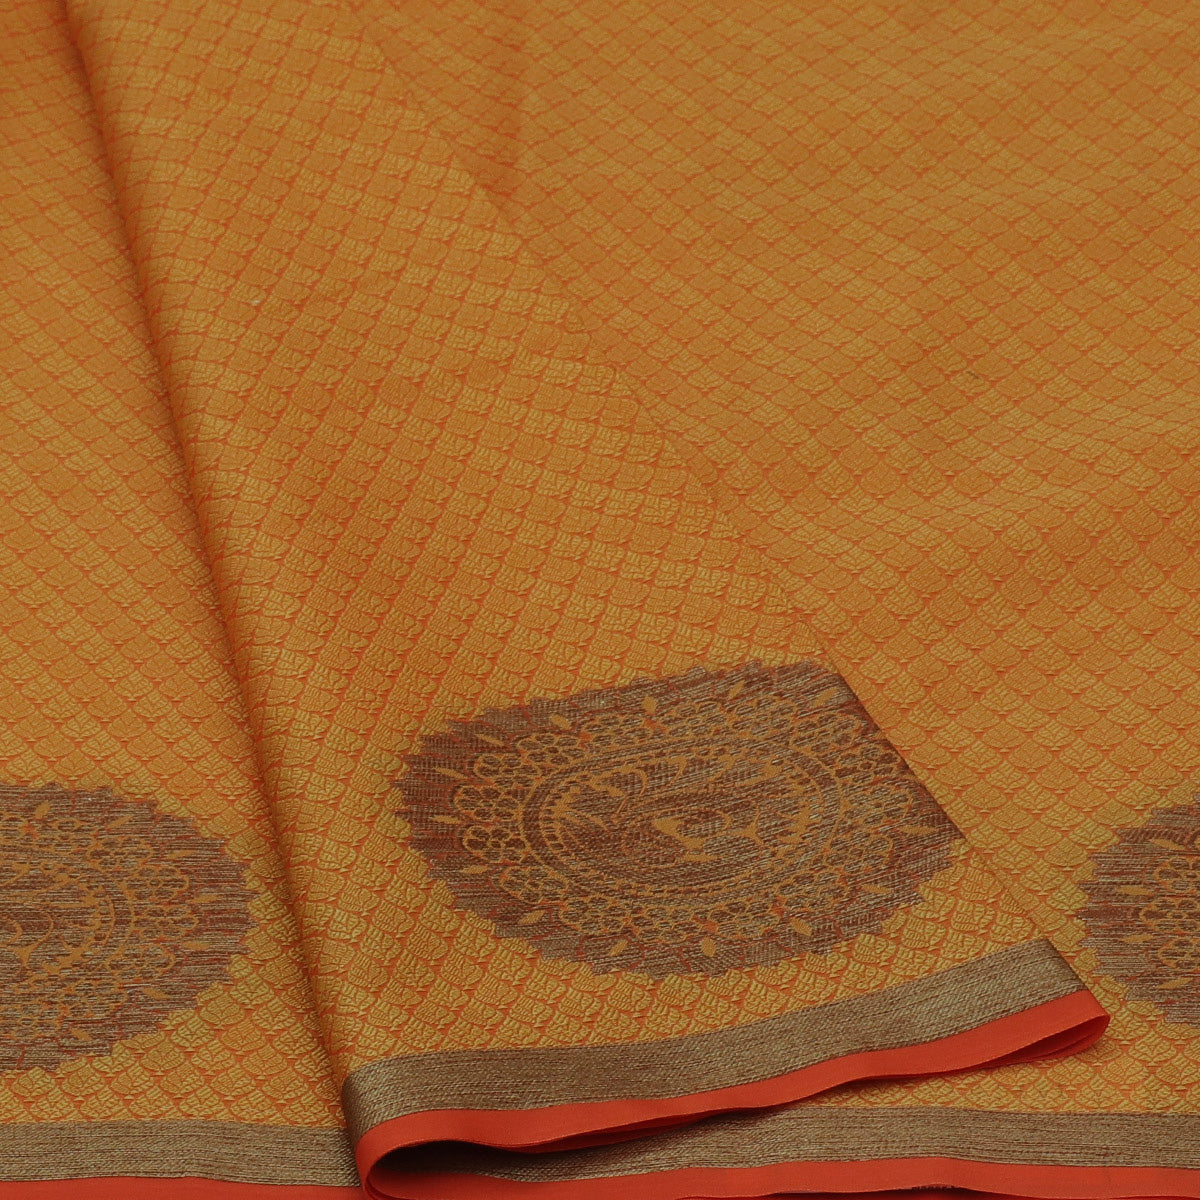 Banarasi Kora Muslin Saree Yellow and Orange with Round Zari Border